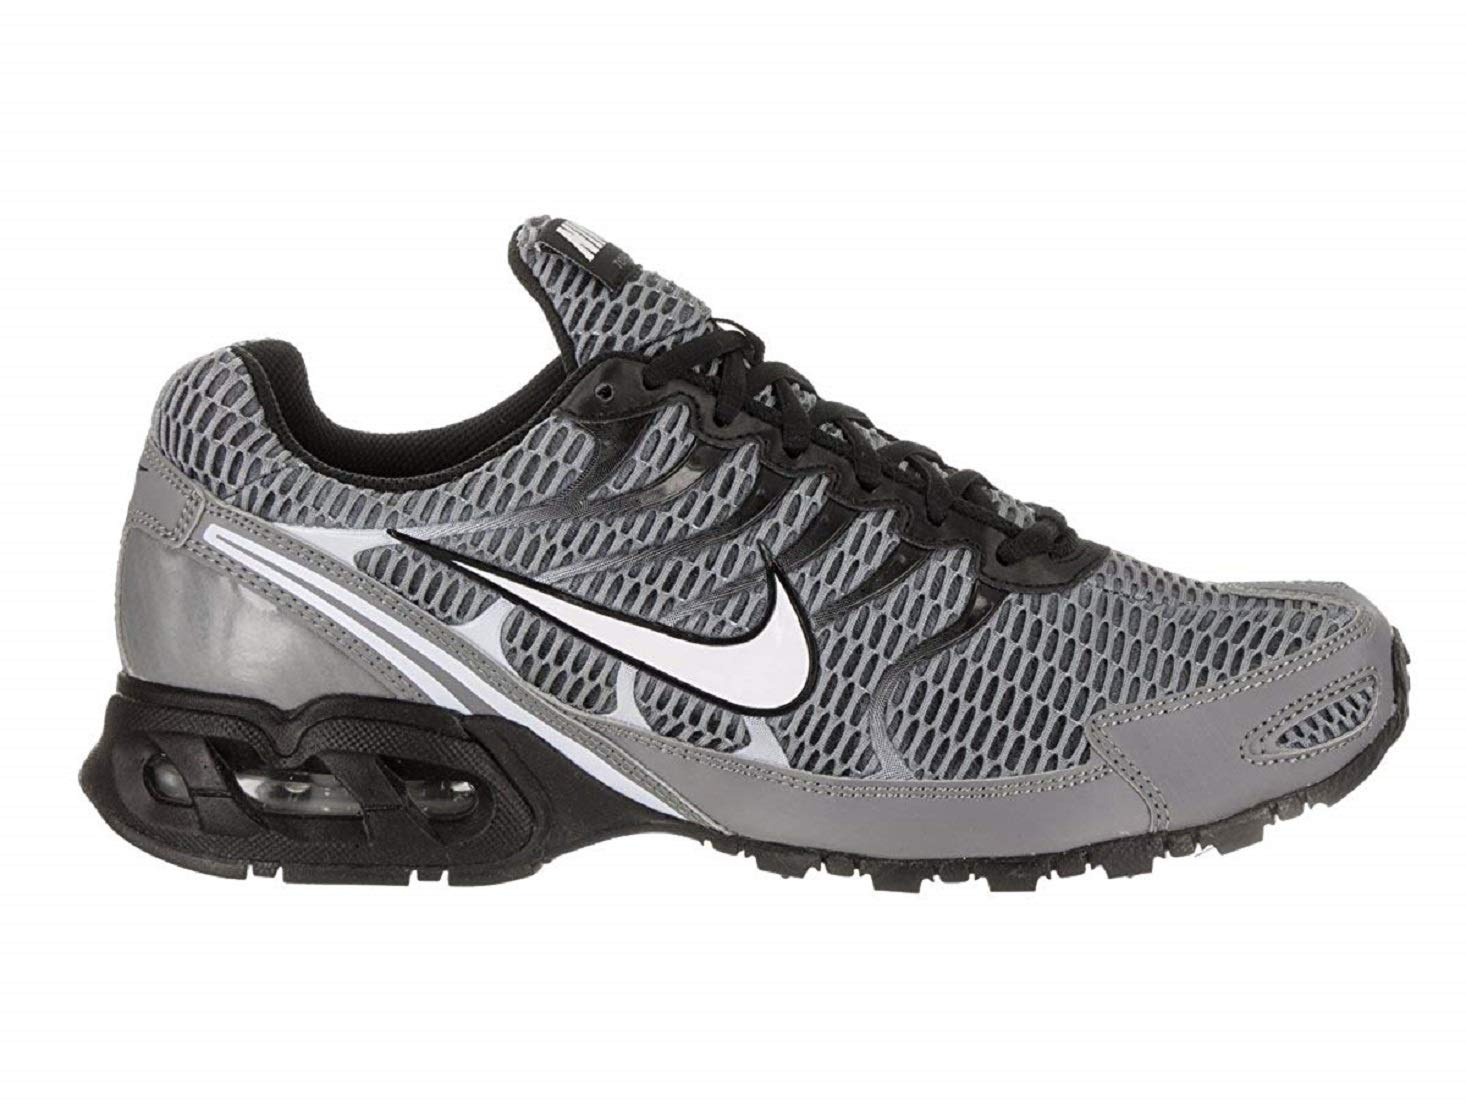 new concept 37da3 0e1ac Galleon - Nike Mens Air Max Torch 4 Running Shoe Cool Grey White Black Pure  Platinum 8 D(M) US